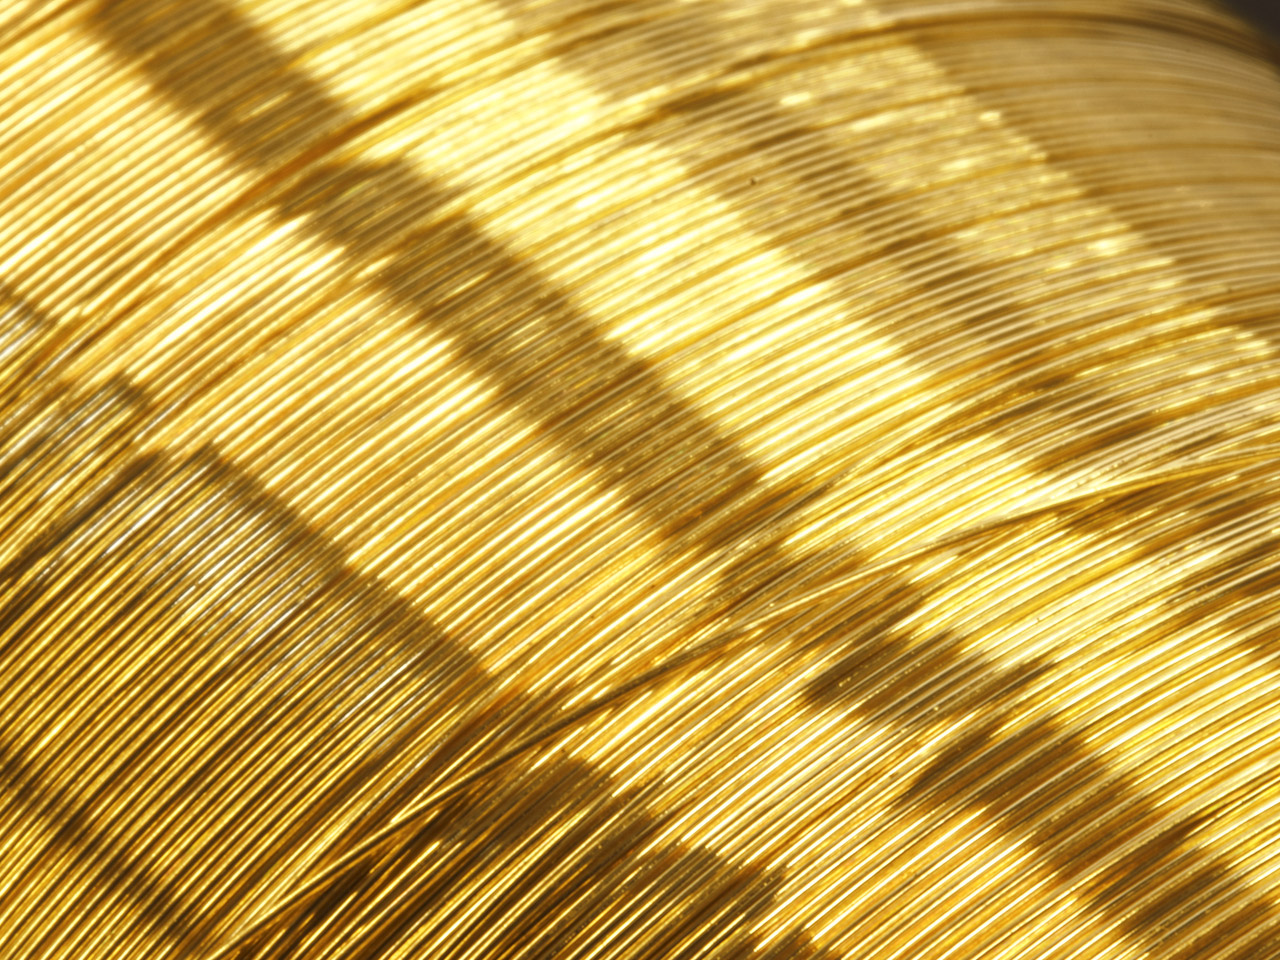 Q9999 Fine Gold Wire 0.50mm Fully  Annealed, 50gm Reels